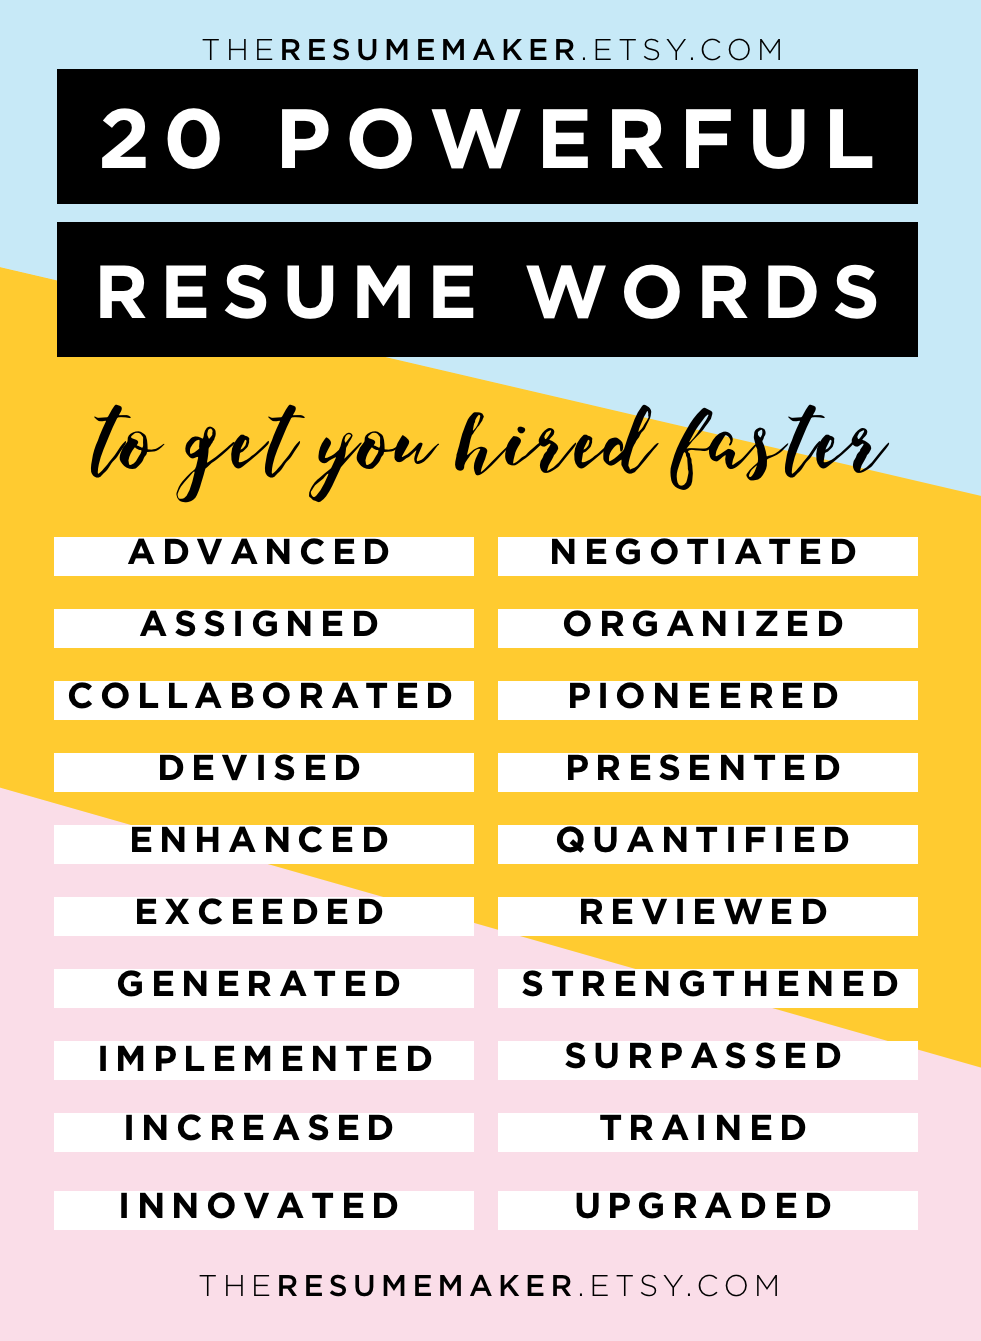 Resume power words free resume tips resume template resume words resume power words free resume tips resume template resume words action words thecheapjerseys Image collections